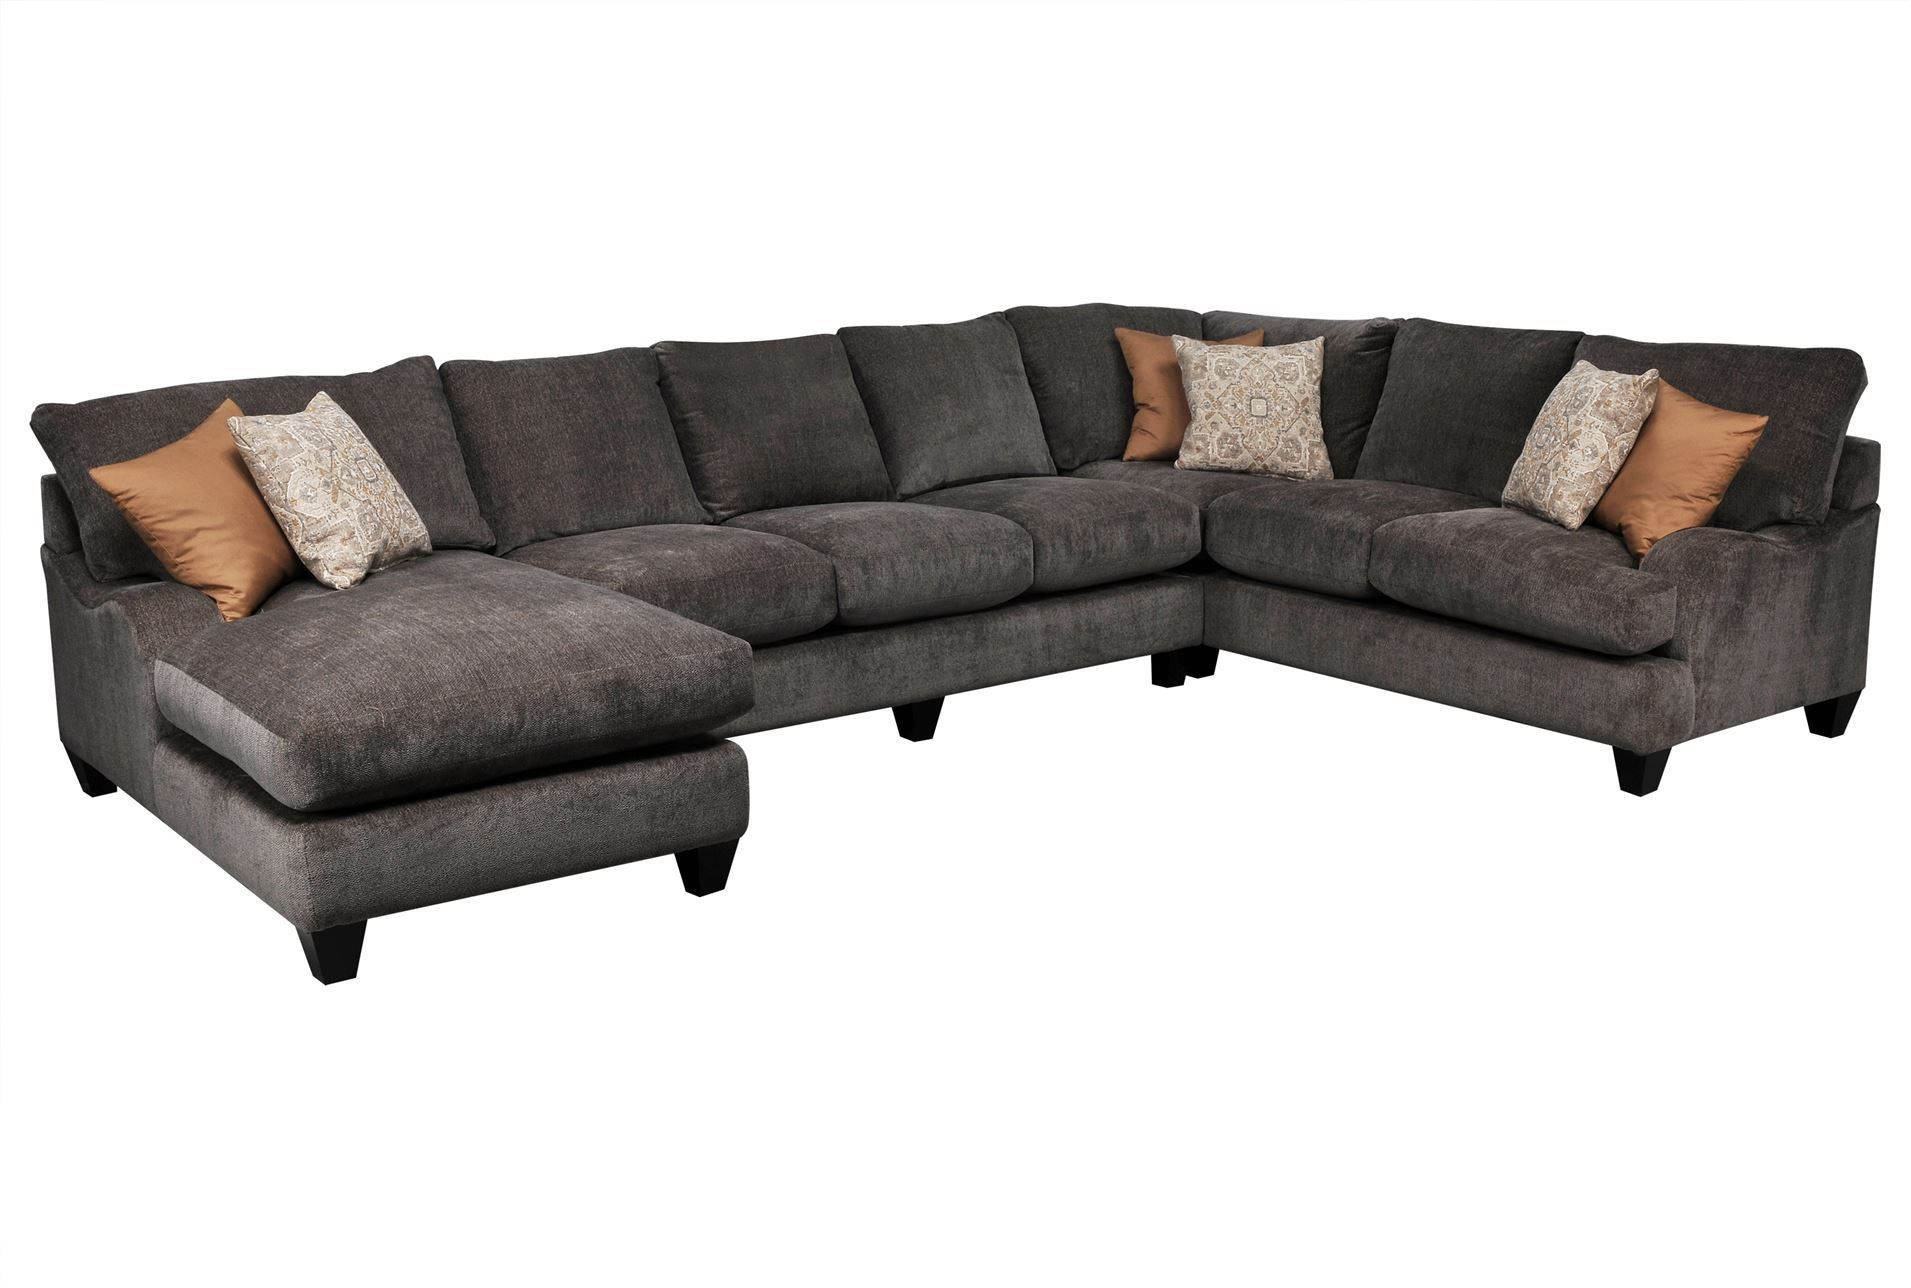 Pryce 3 Piece Sectional W Laf Chaise Signature 2 Chaise